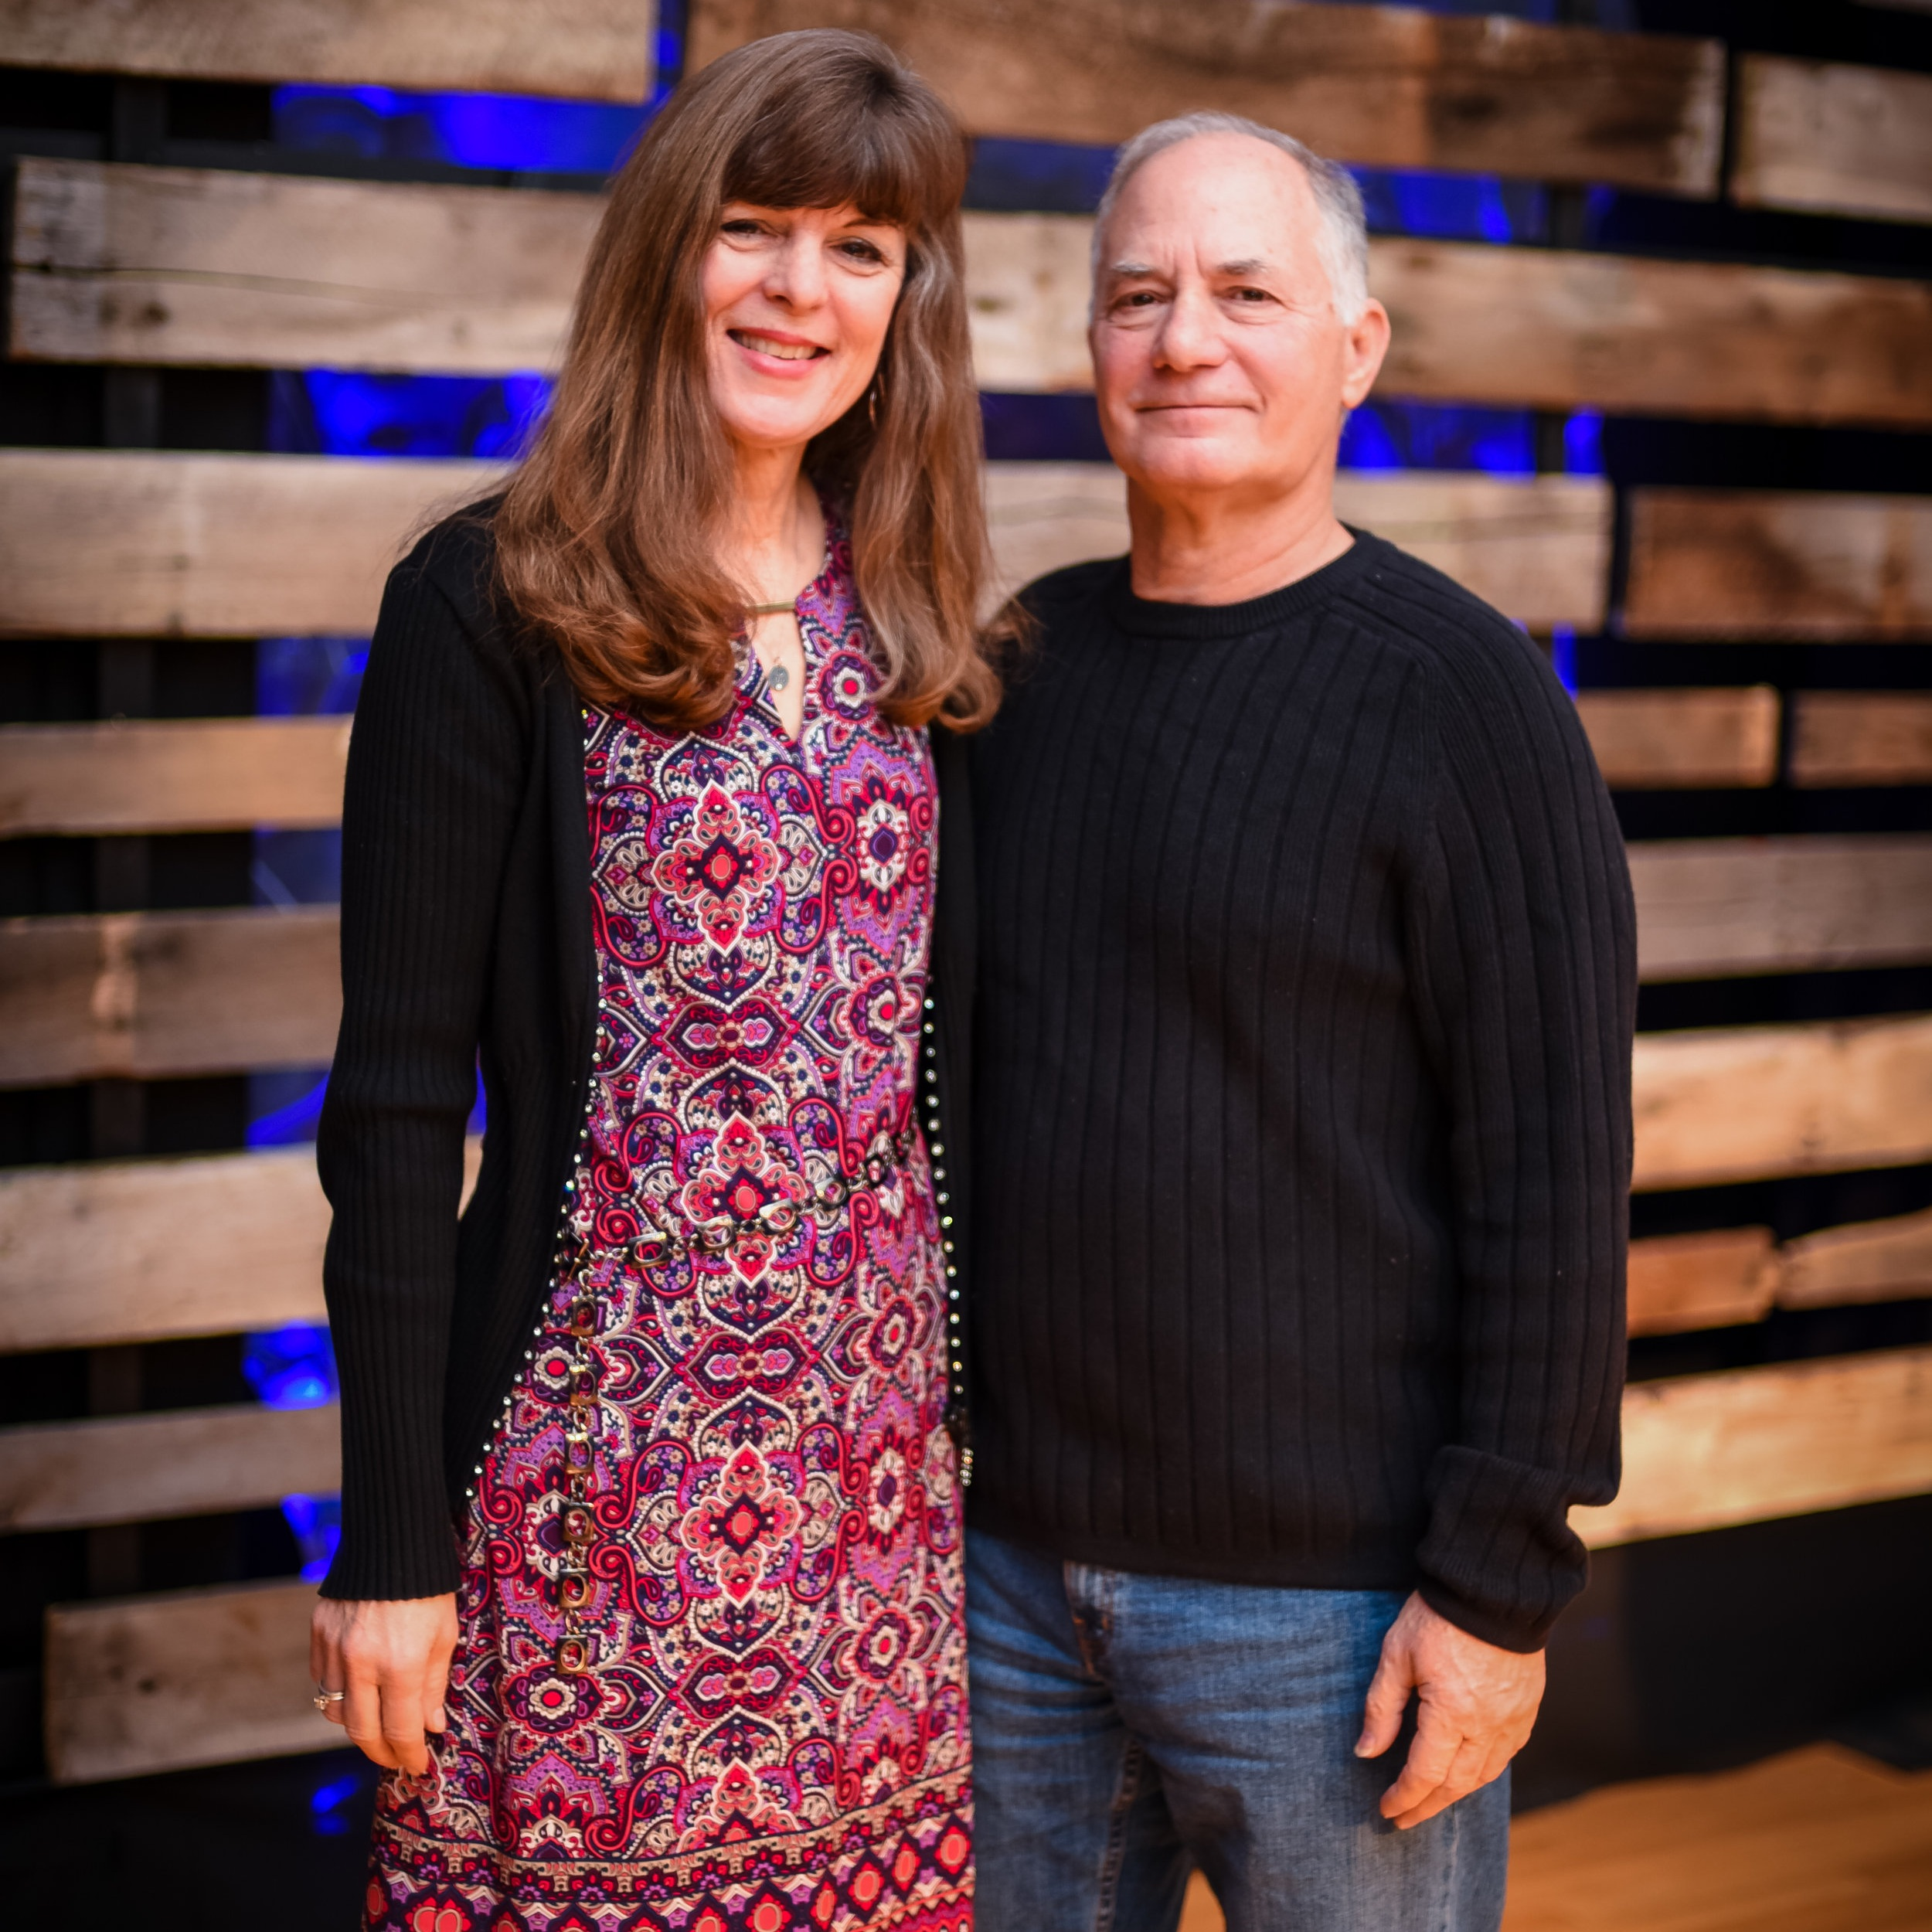 Charles and Barbara Baiera    Charles and Barbara oversee our altar ministry team. Barbara serves in our children's ministry